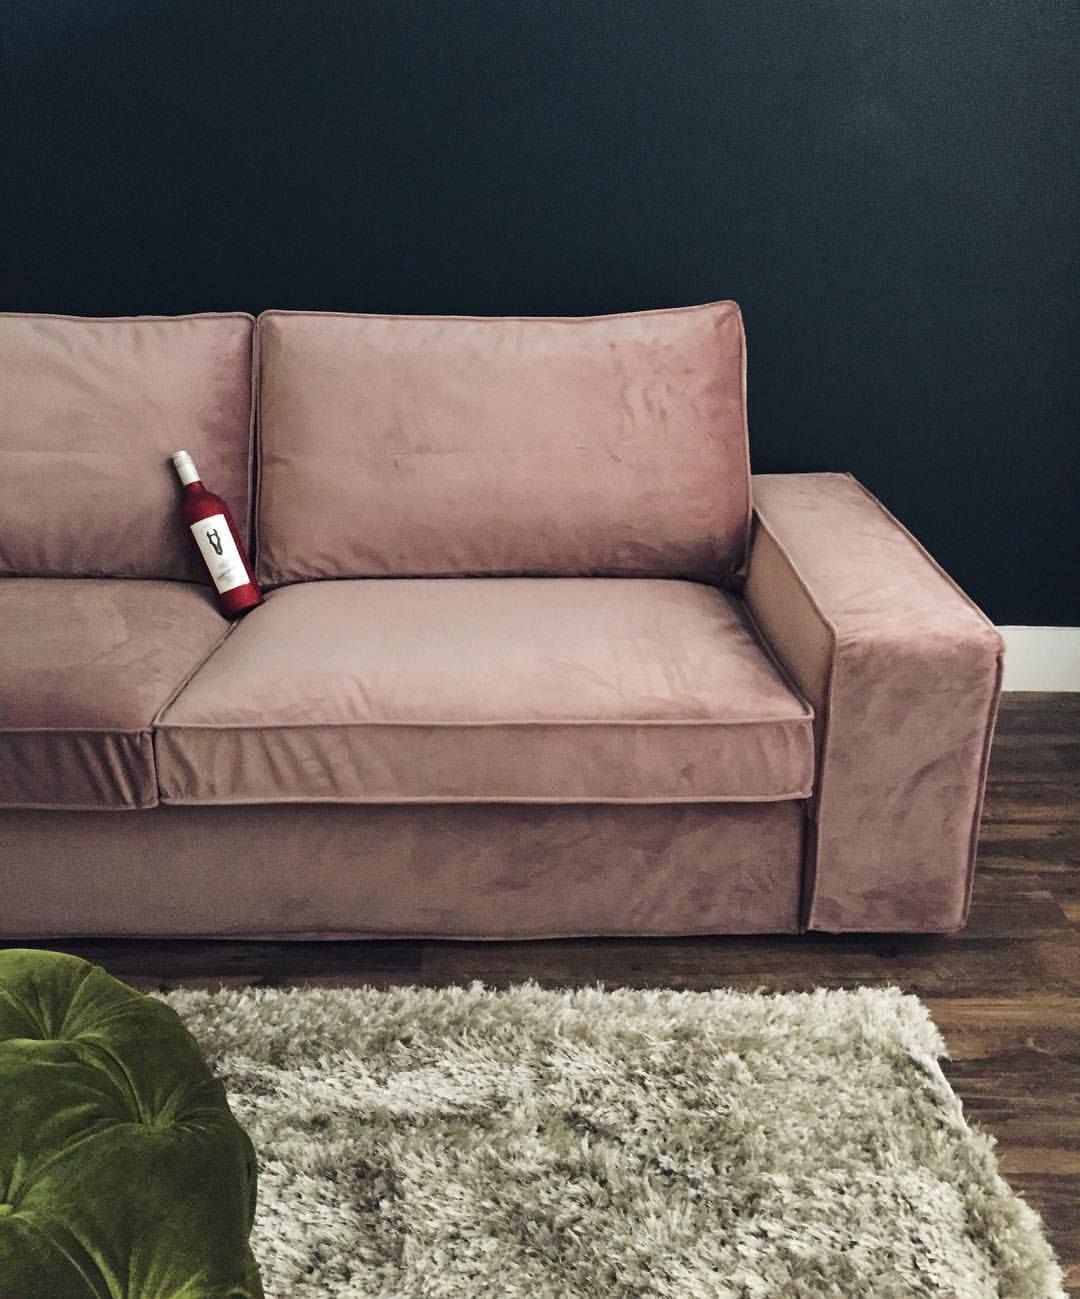 thechocolatedoll #ikea #kivik cover from #covercouch in #velvet grey on